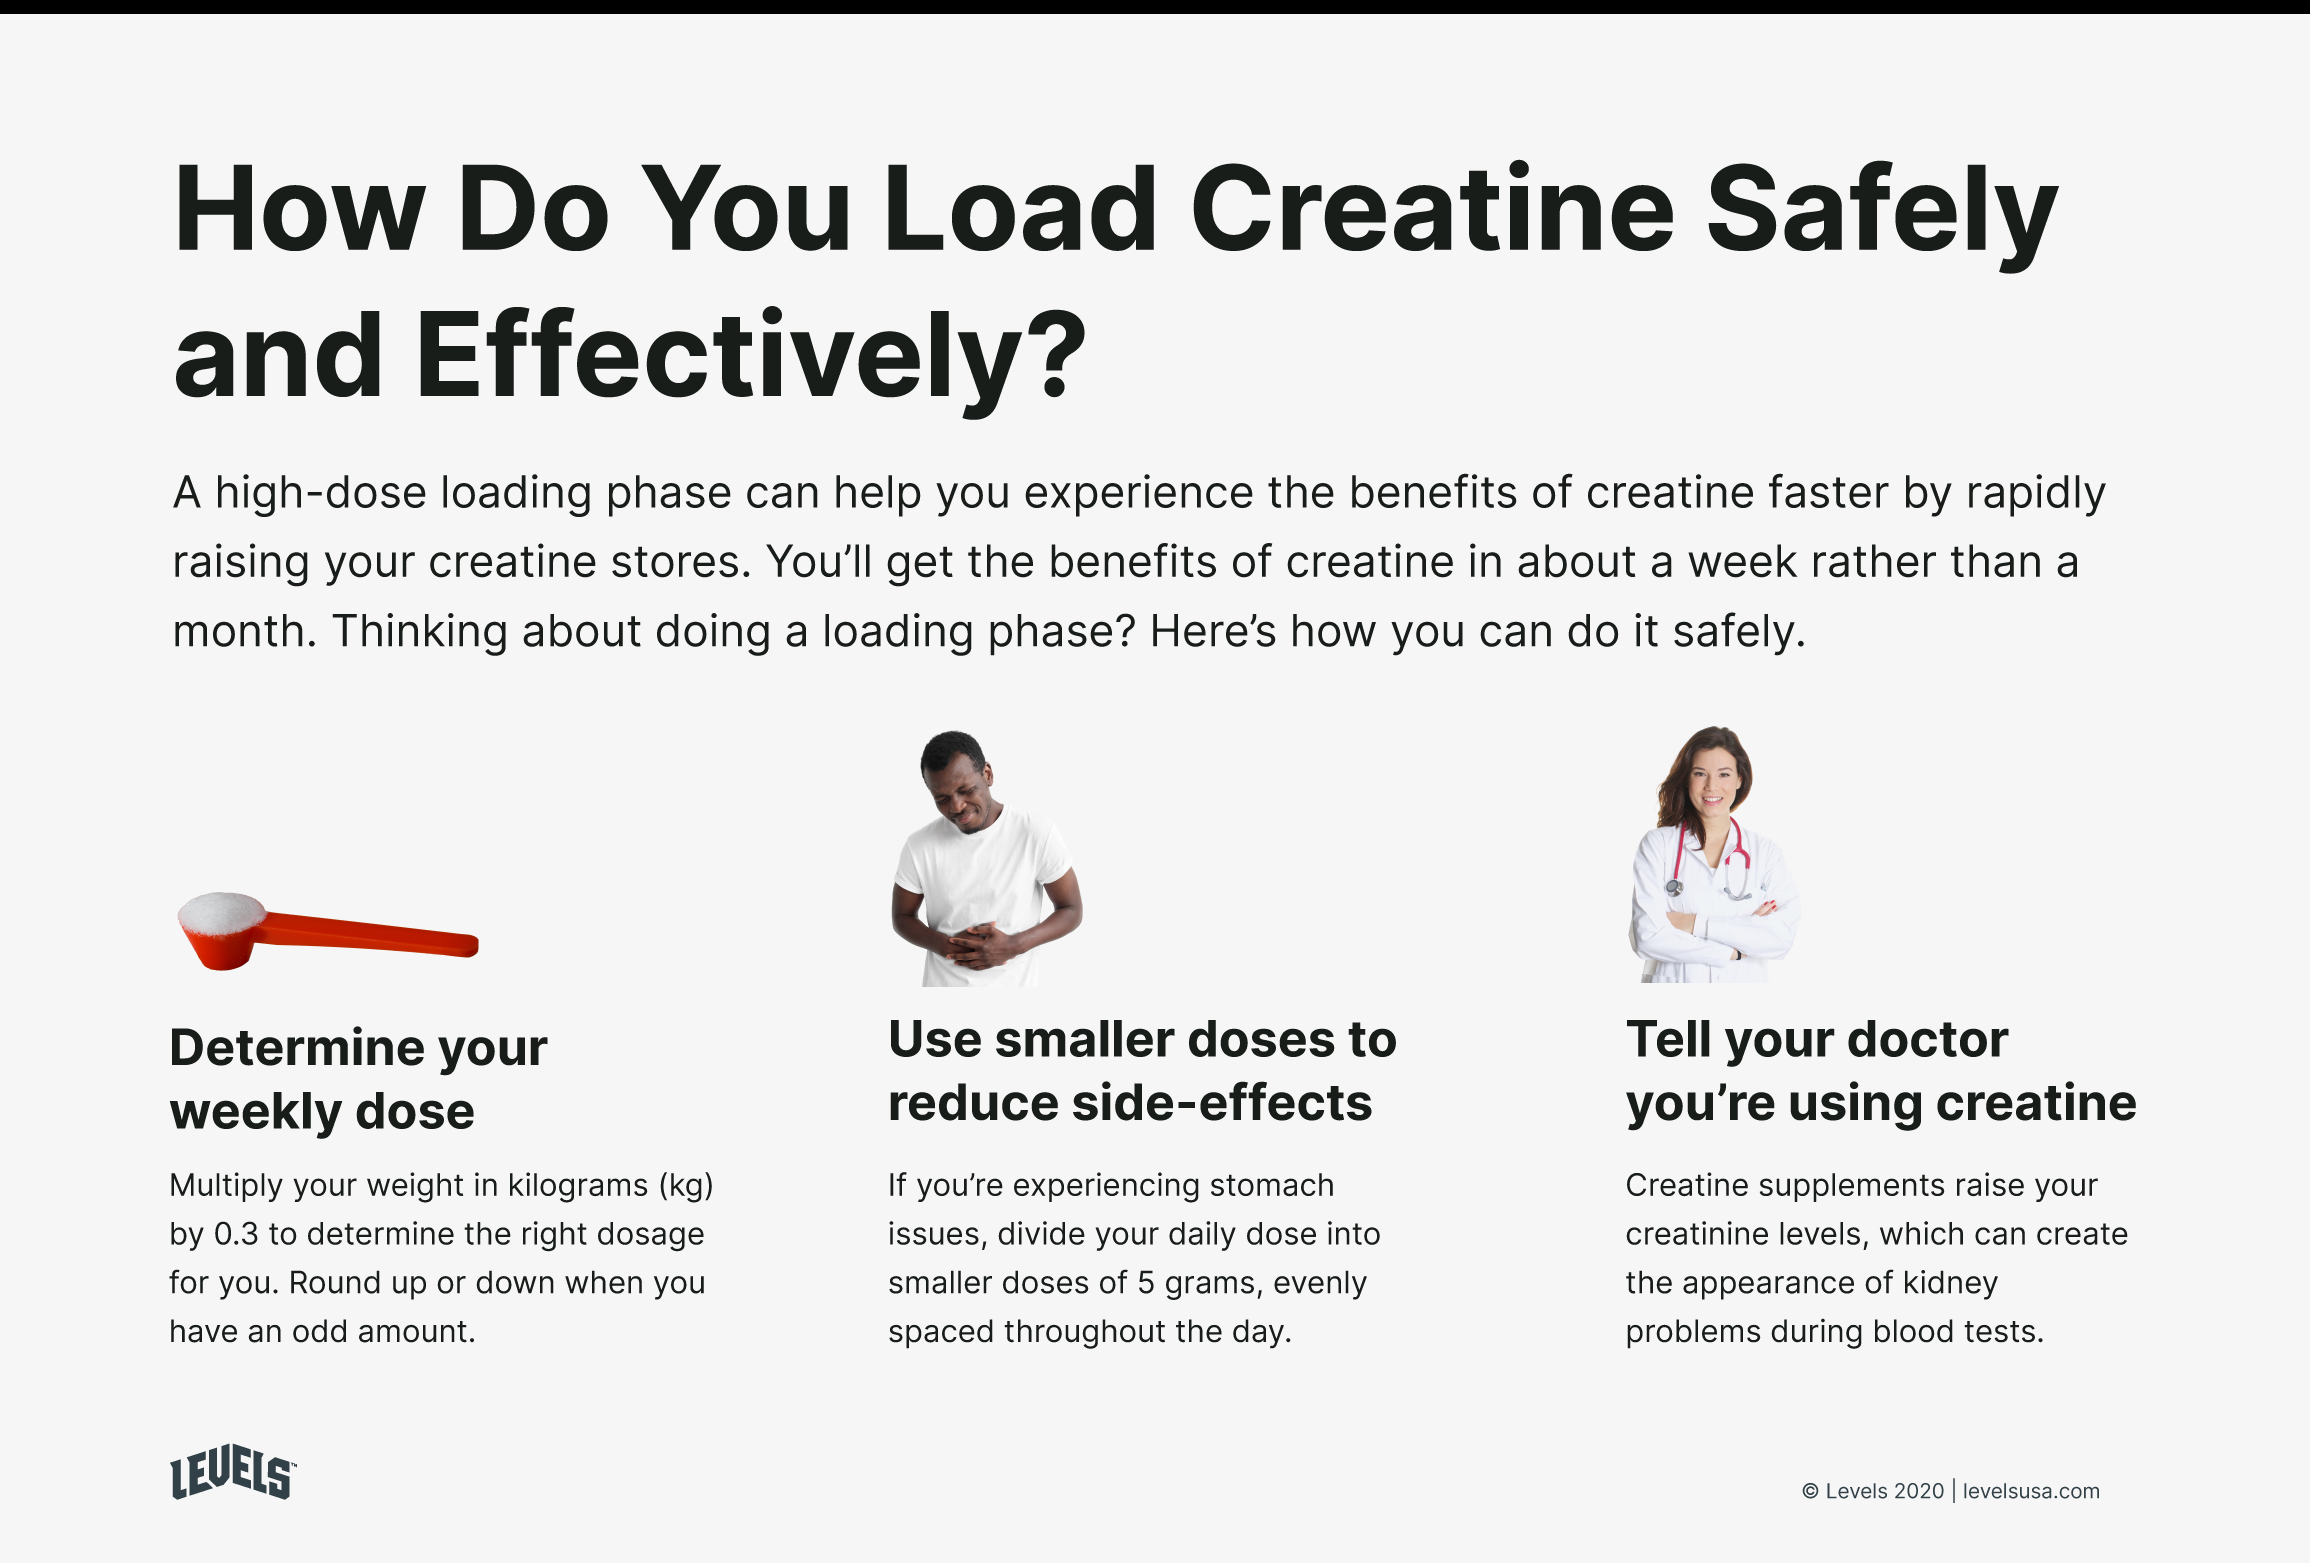 How to Load Creatine Safely - Infographic